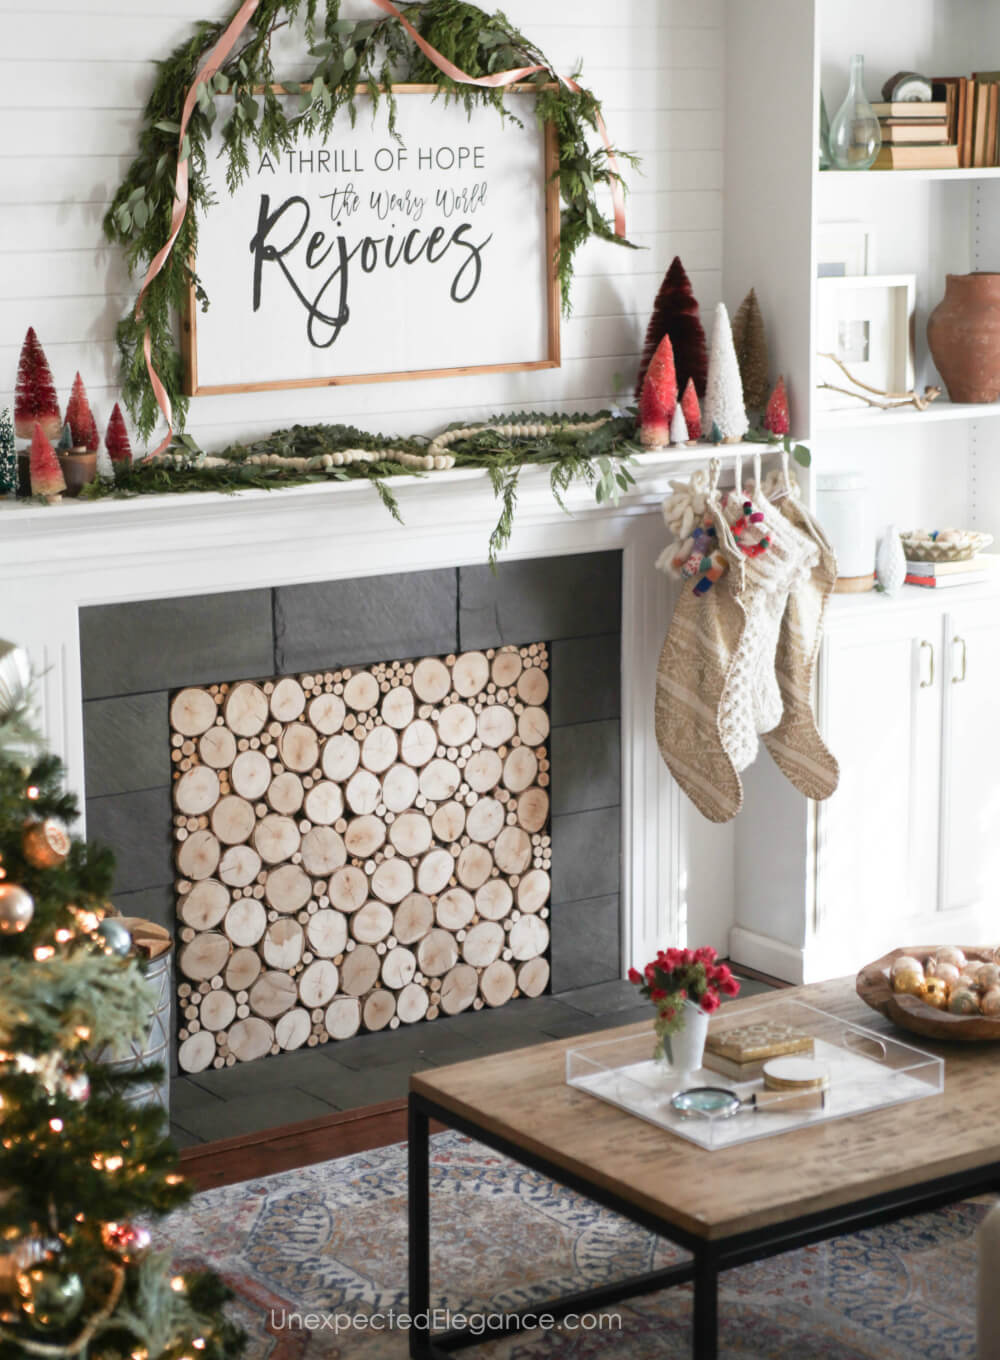 Get some easy ideas to make Christmas a little less stressful this year.